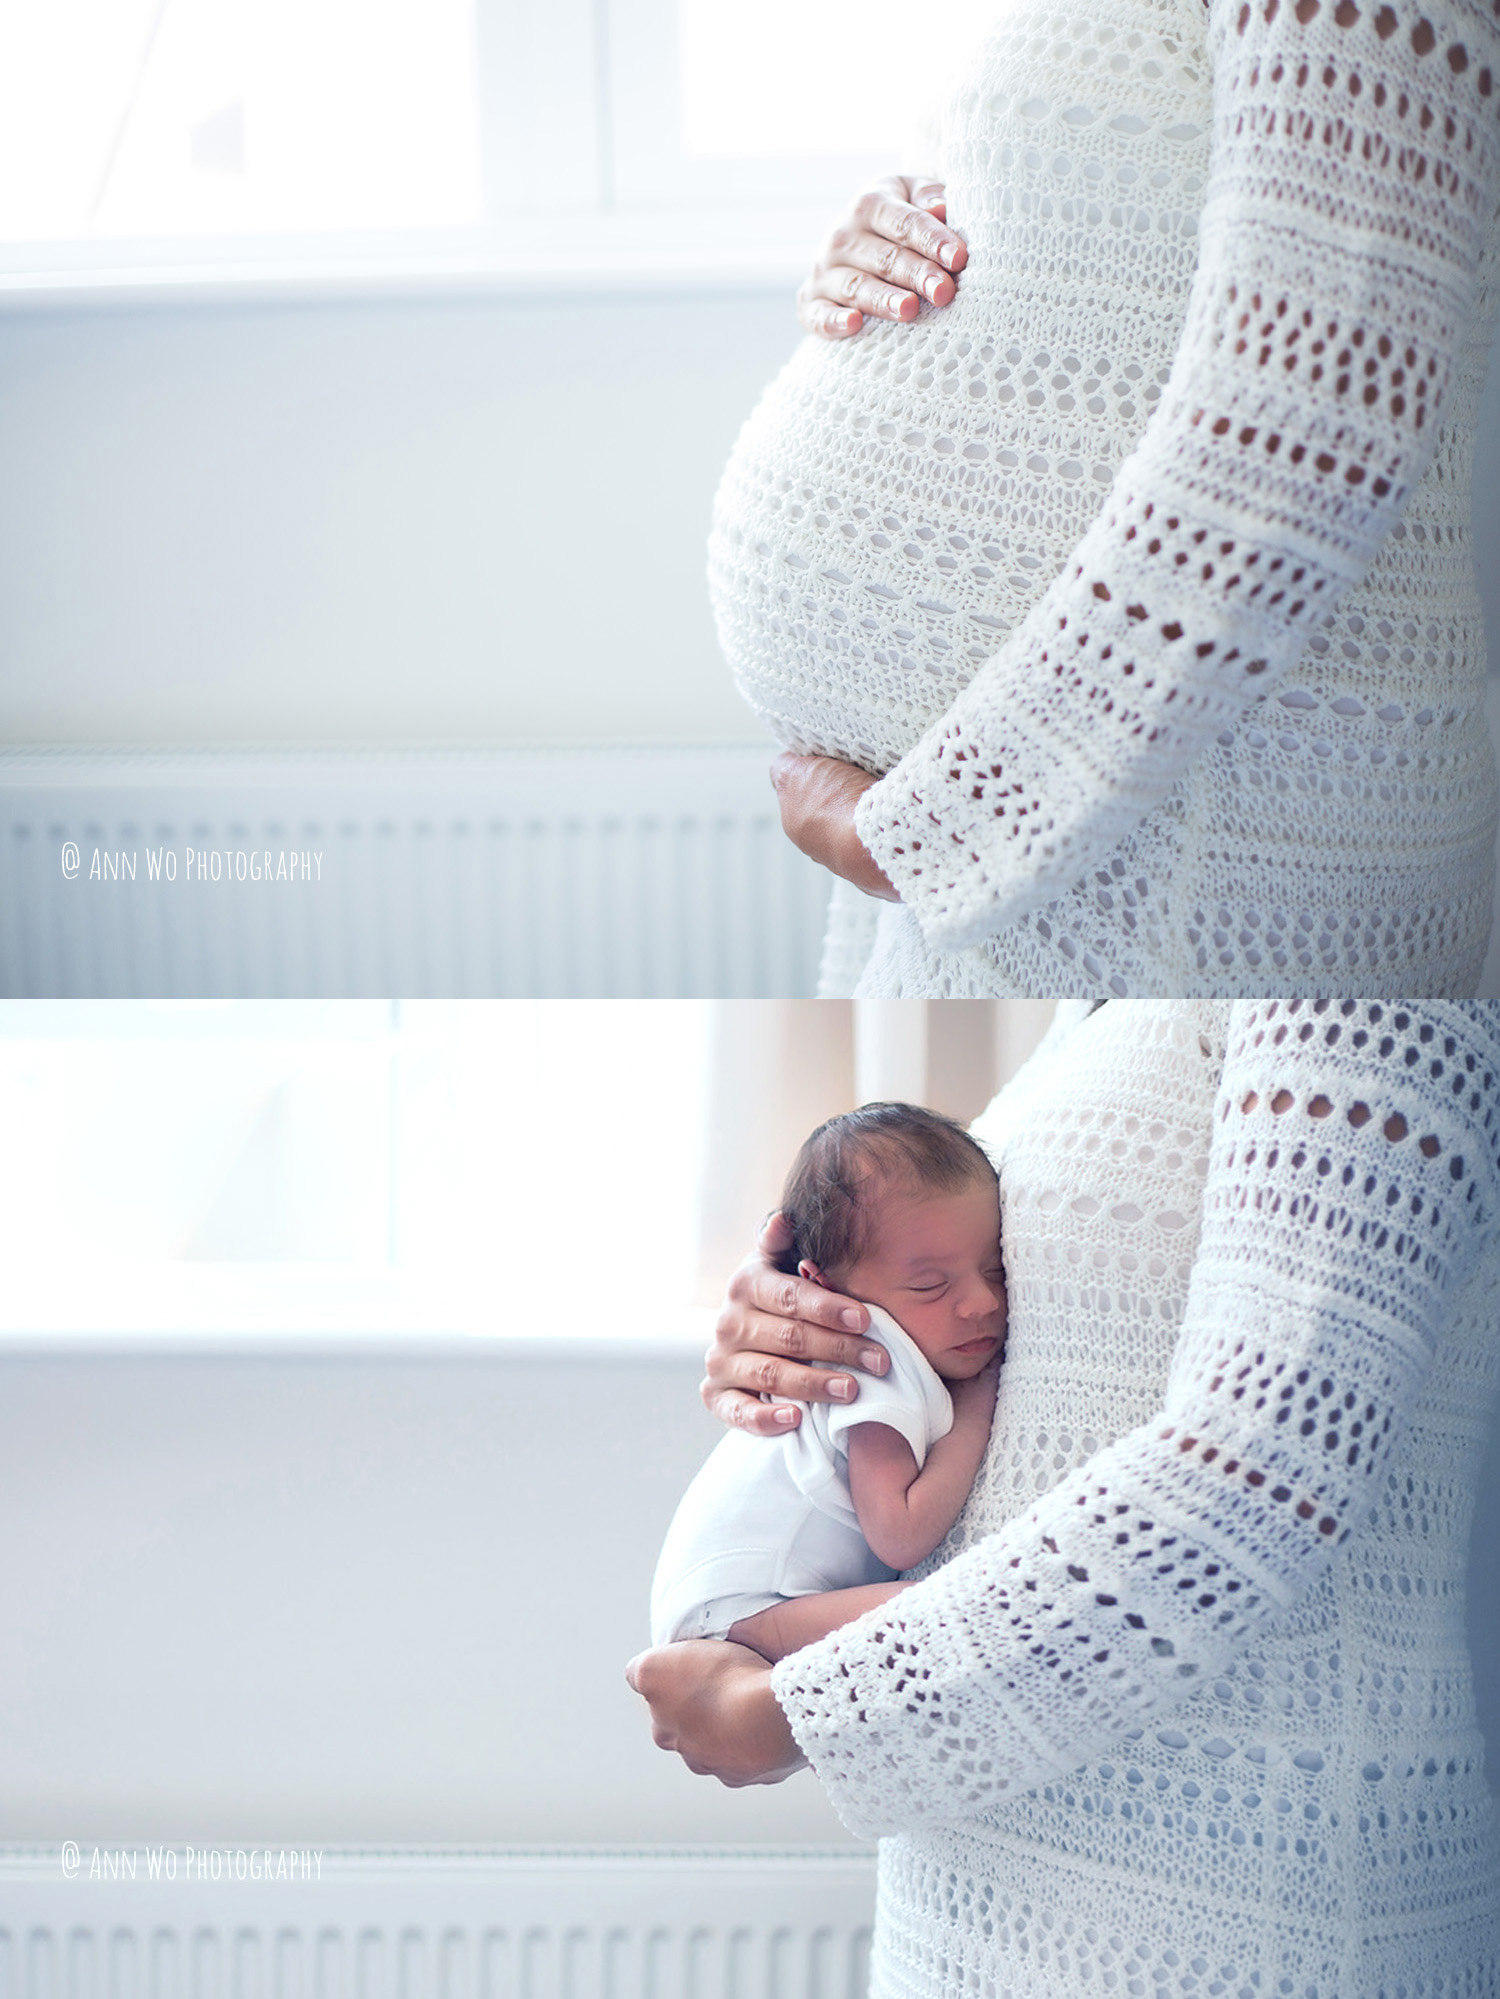 bump-to-baby-photography-london-ann-wo-home-photo-session.jpg